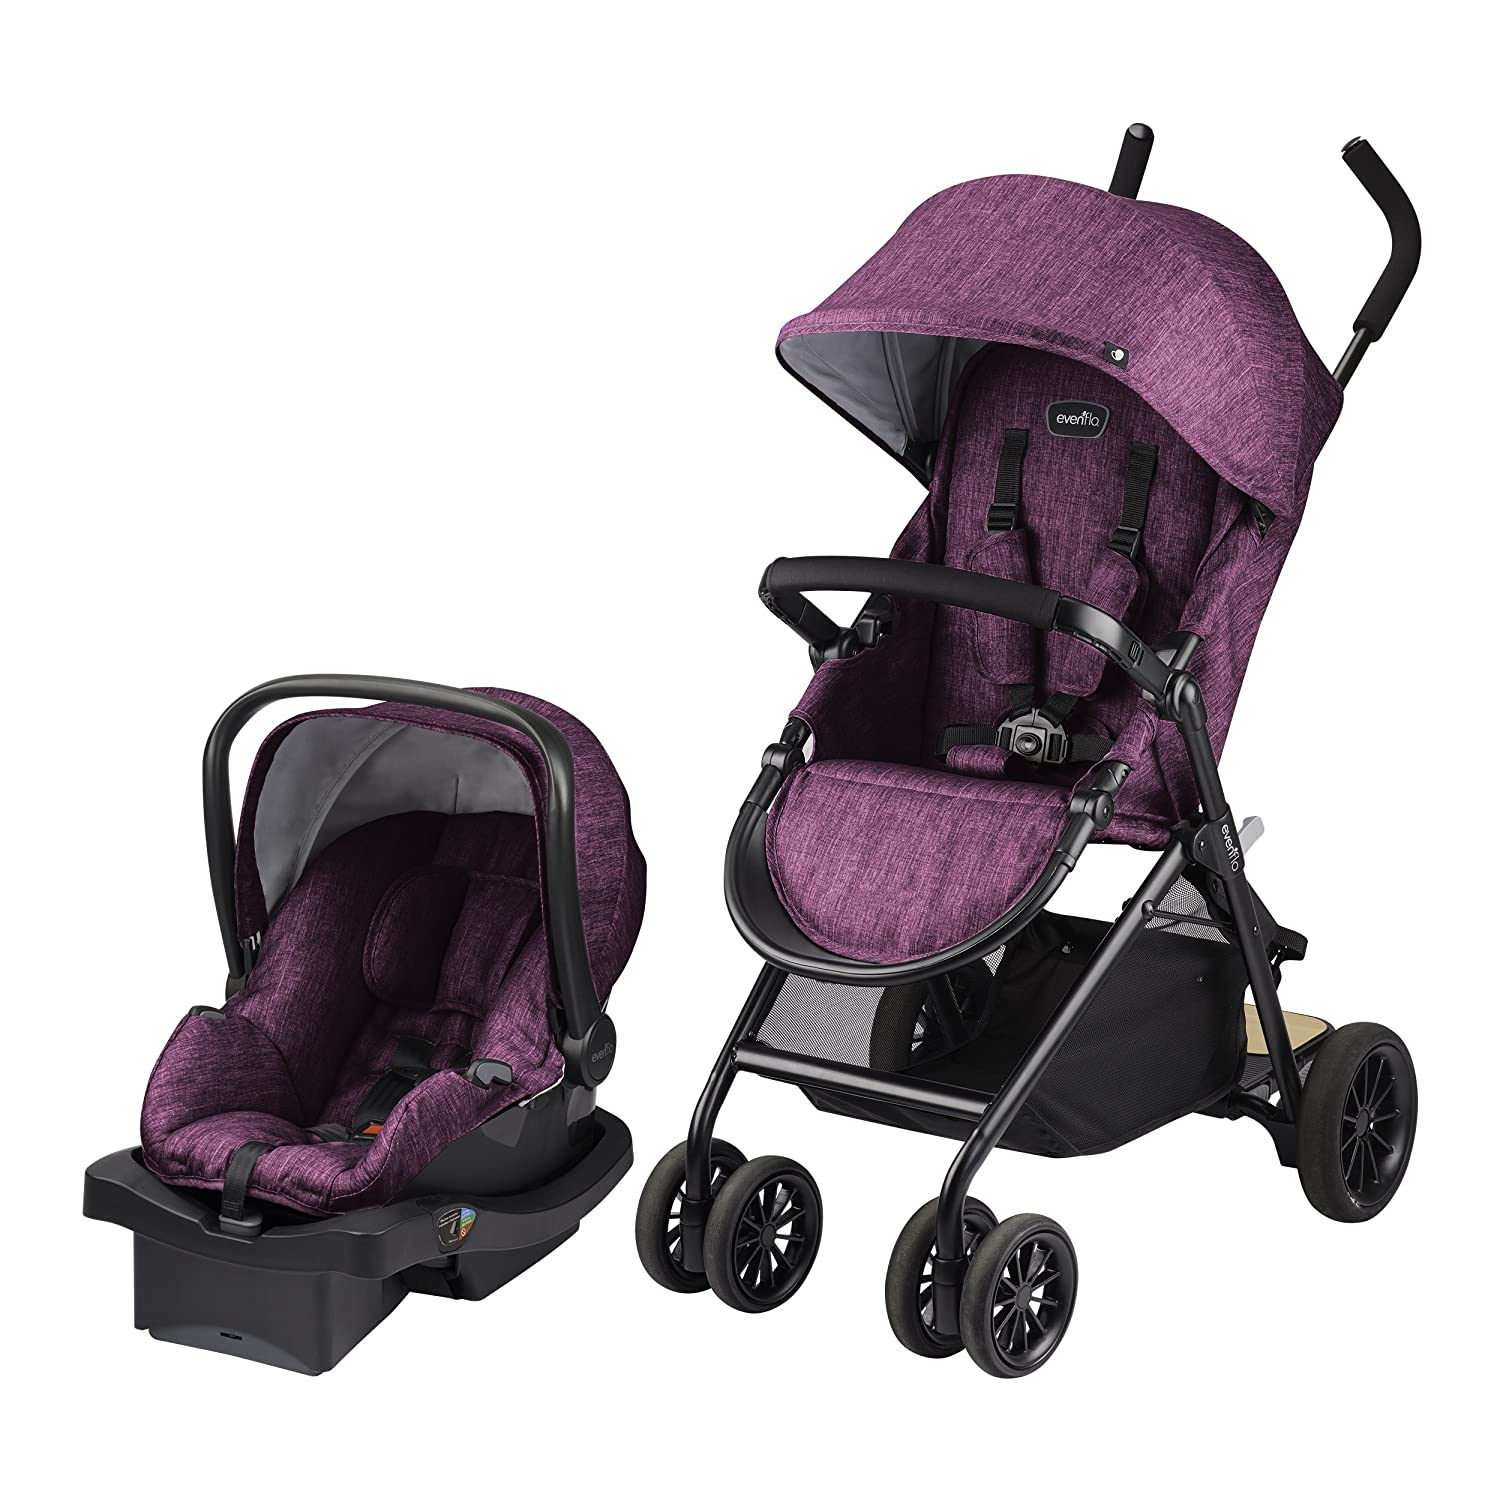 Evenflo Sibby Travel System with LiteMax, Raspberry, Black, Mauve, One Size 56211976